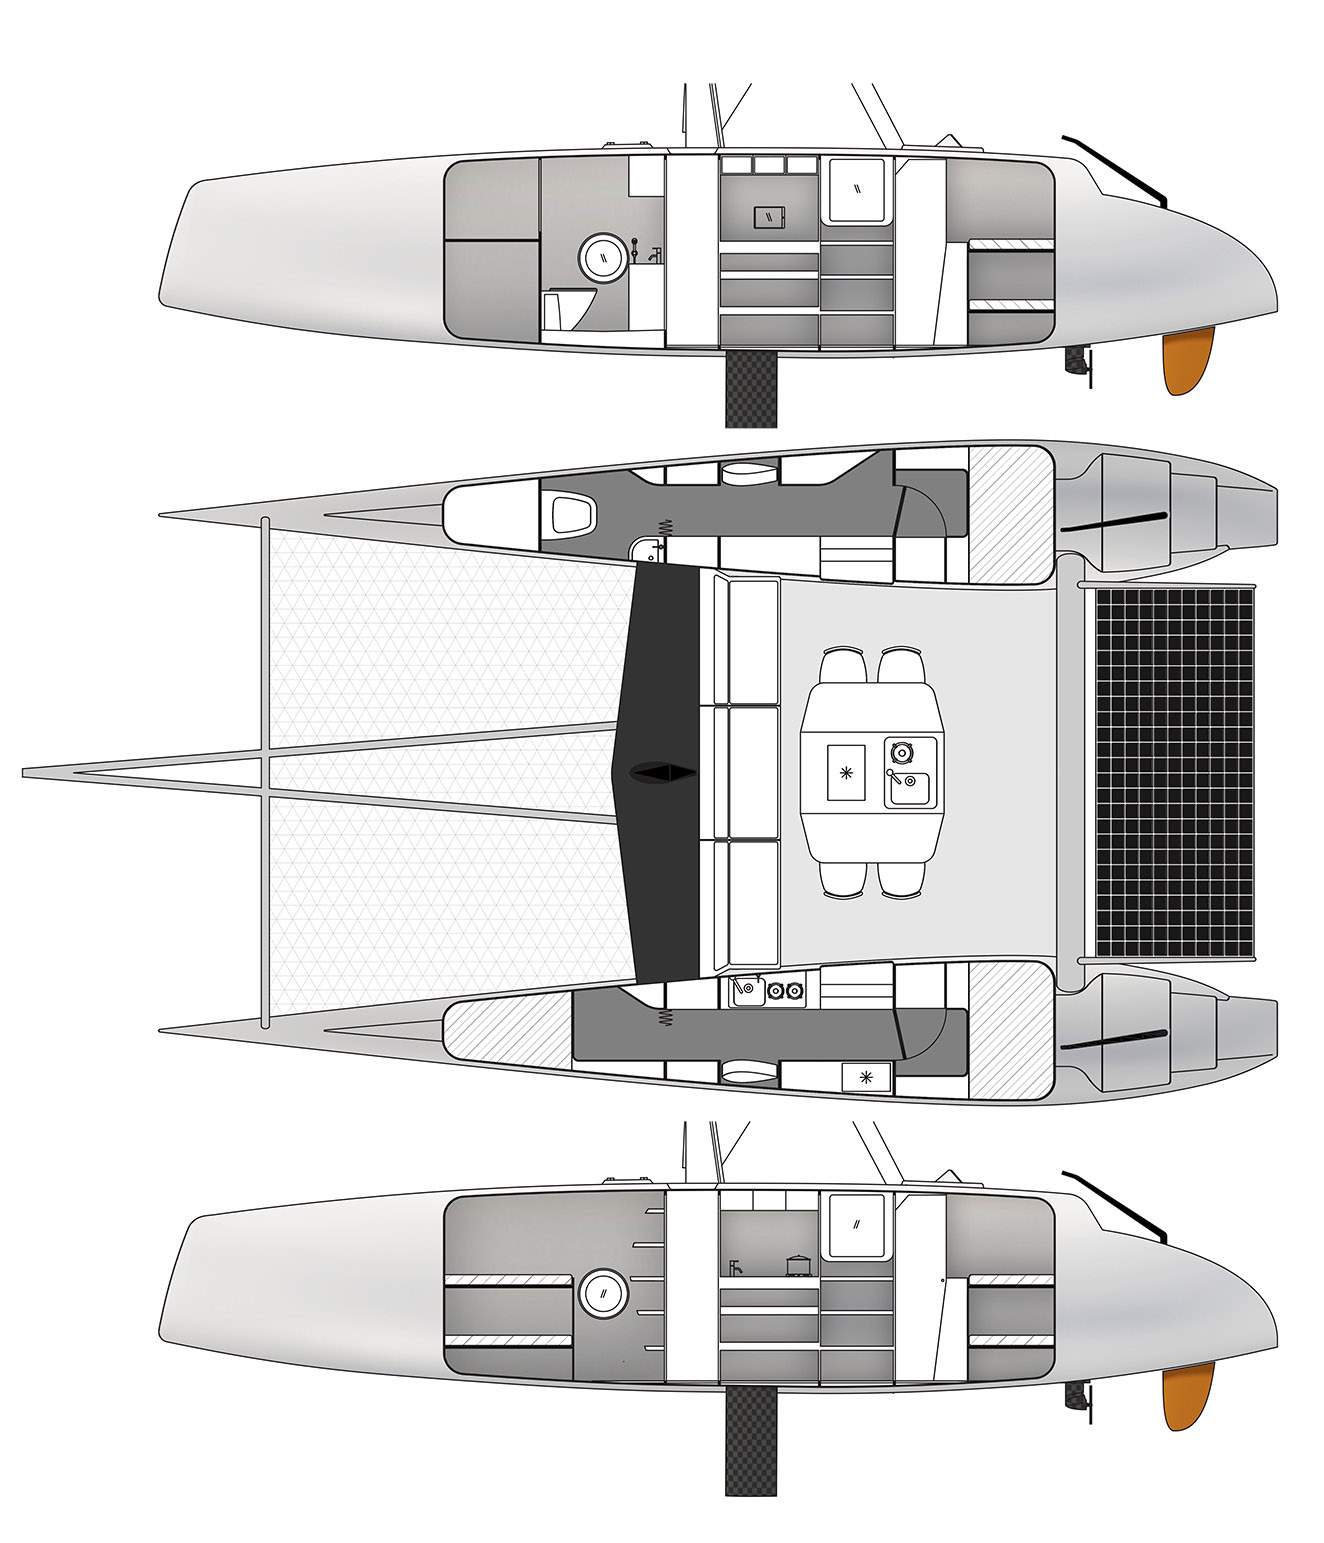 Space plan and side views